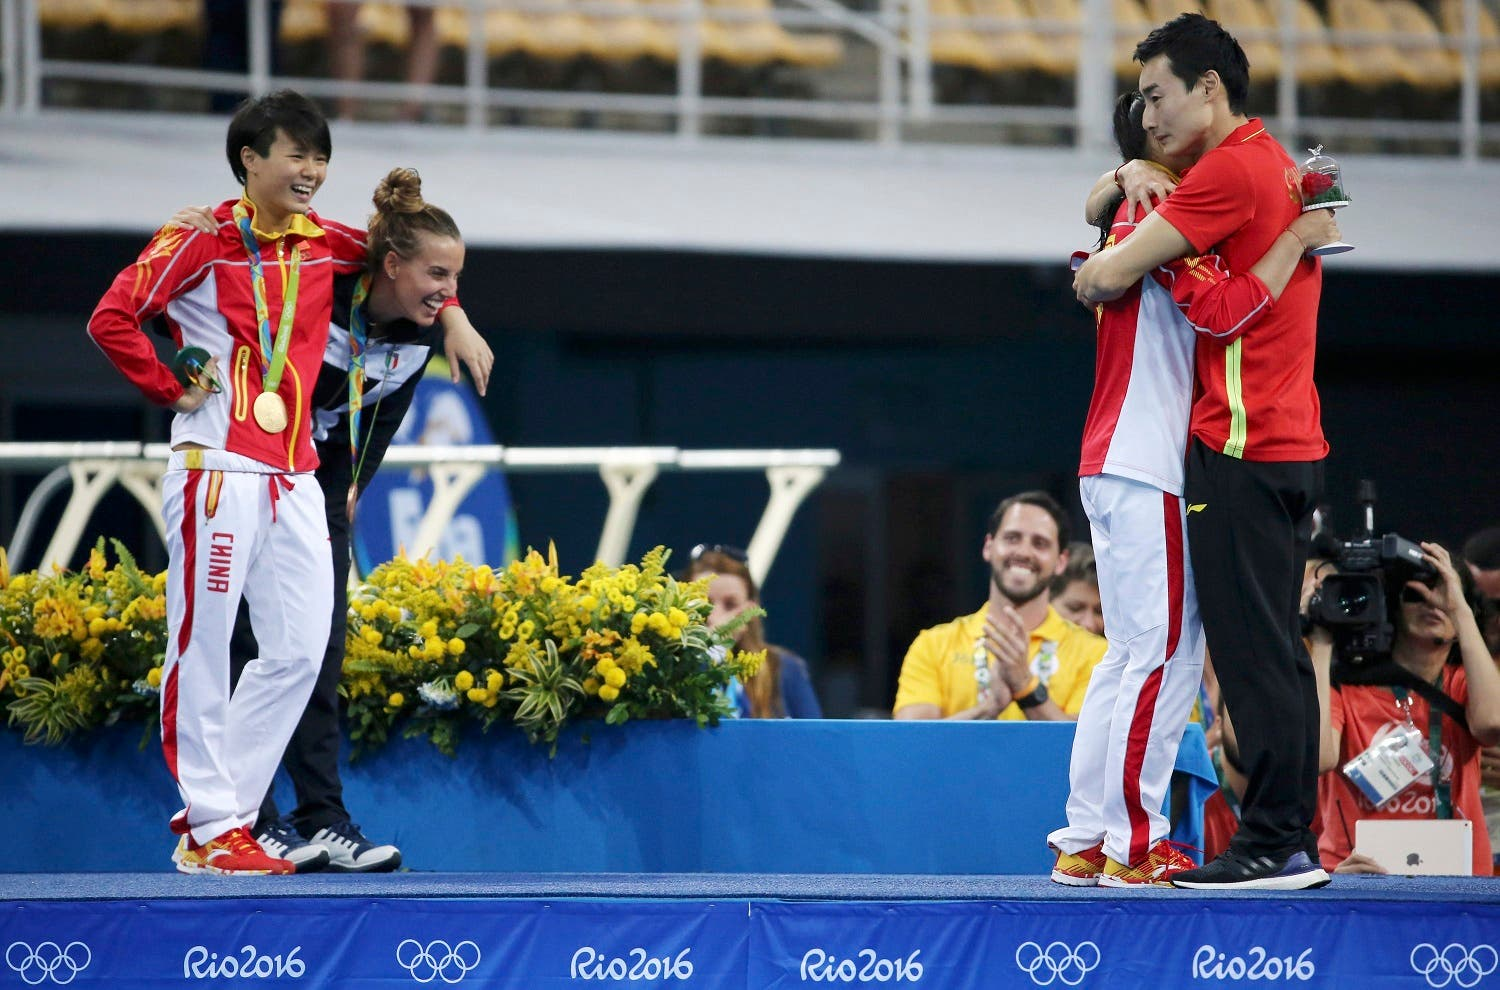 He Zi (CHN) of China recieves a marriage proposal from Olympic diver Qin Kai (CHN) of China after the medal ceremony. She accepted Qin's proposal. REUTERS